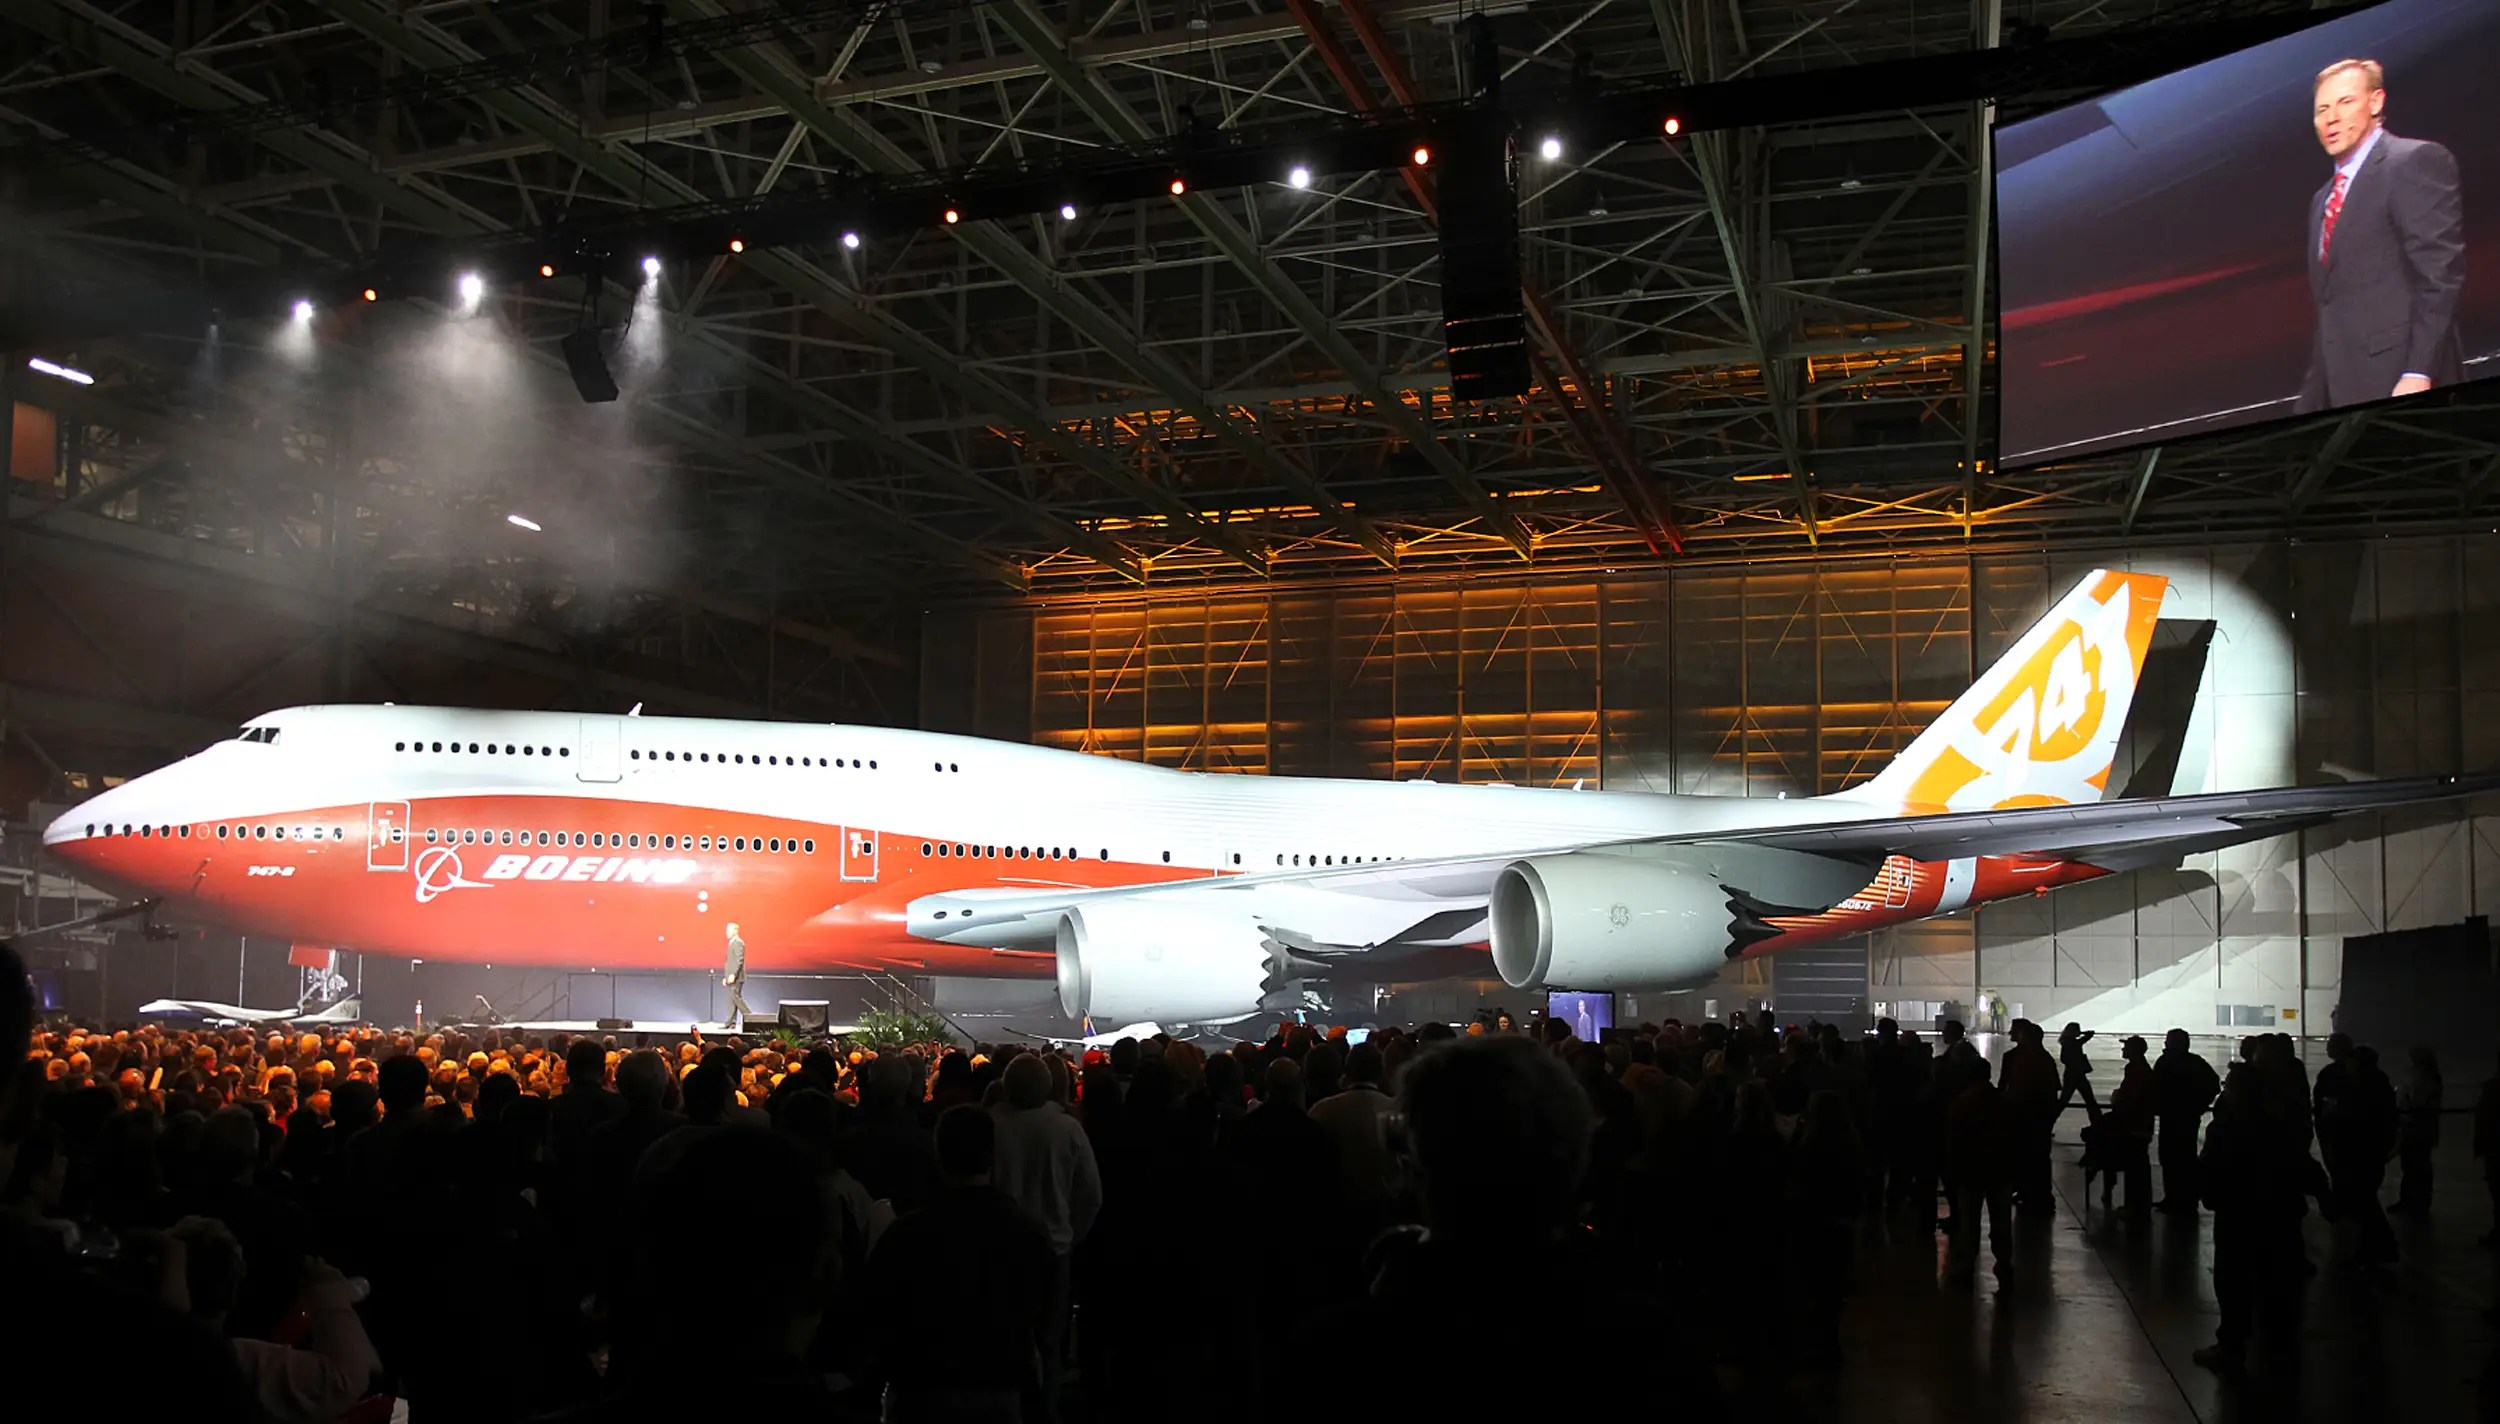 For years Boeing has offered its airliners for sale to private parties or governments under its Boeing Business Jet (BBJ) program. That ranges from the massive 747-8 jumbo jet...